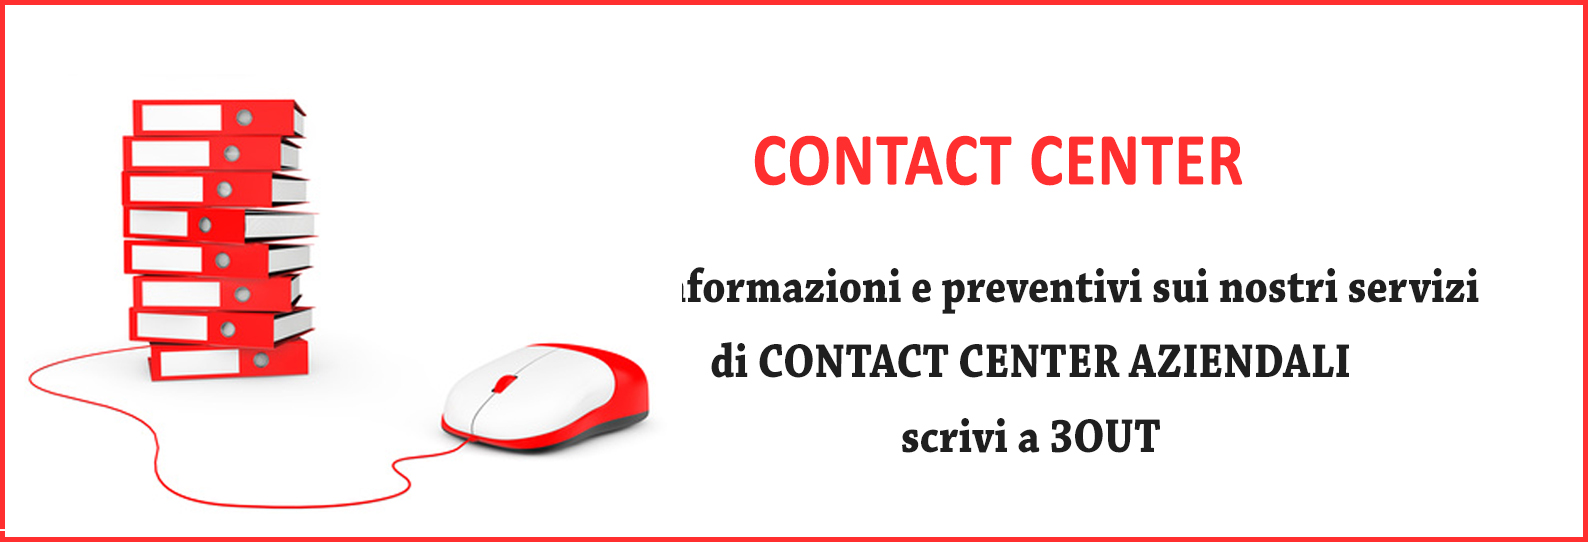 3Out_sito pll_banner_contactcenter